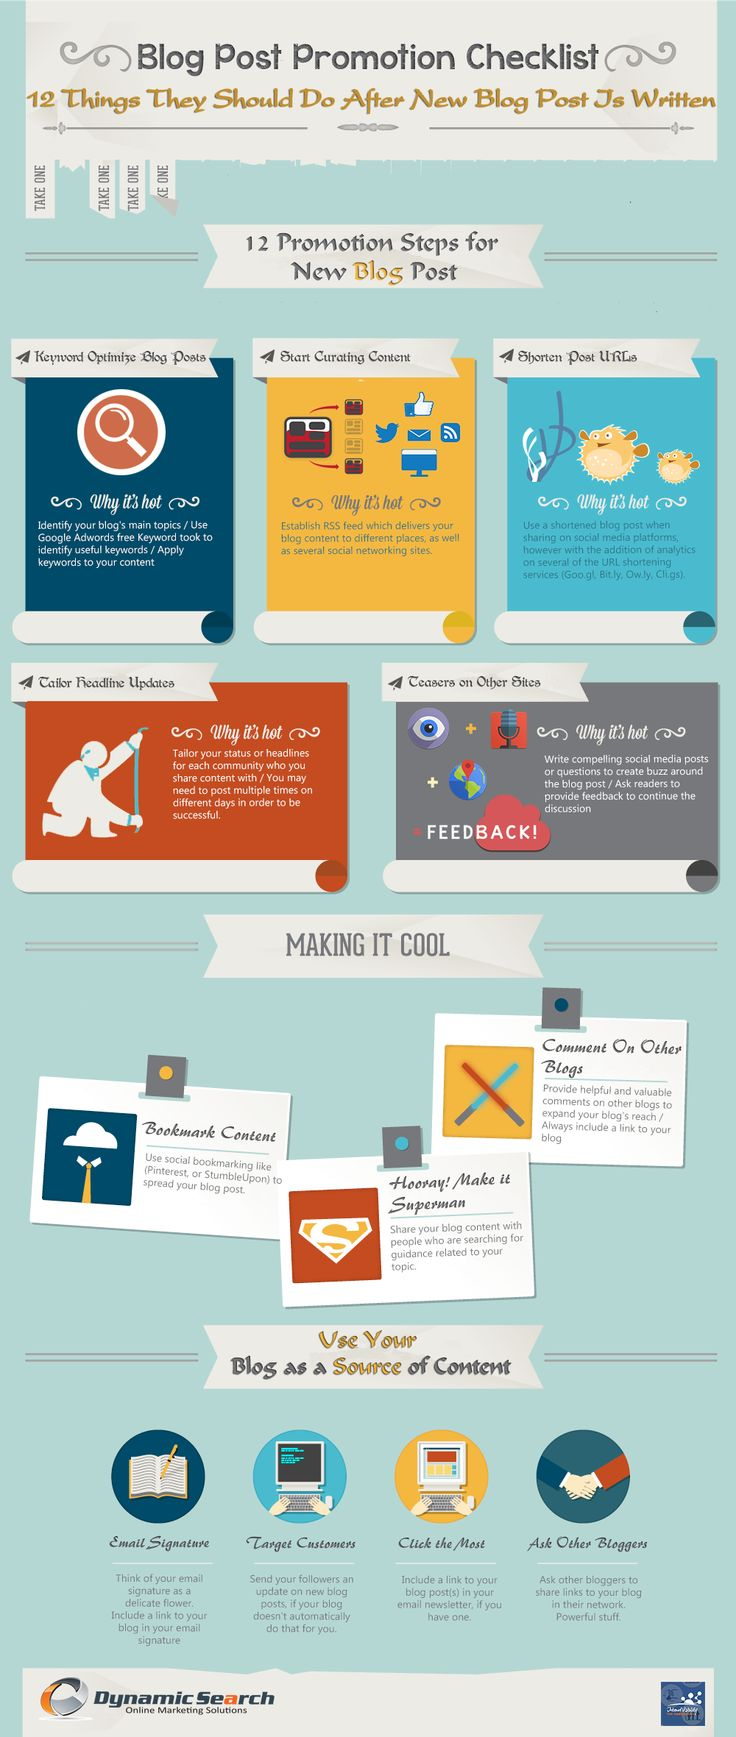 Advertising-Infographics-12-Way-to-Promote-Your-New-Blog Advertising Infographics : 12 Way to Promote Your New Blog Post [INFOGRAPHIC]